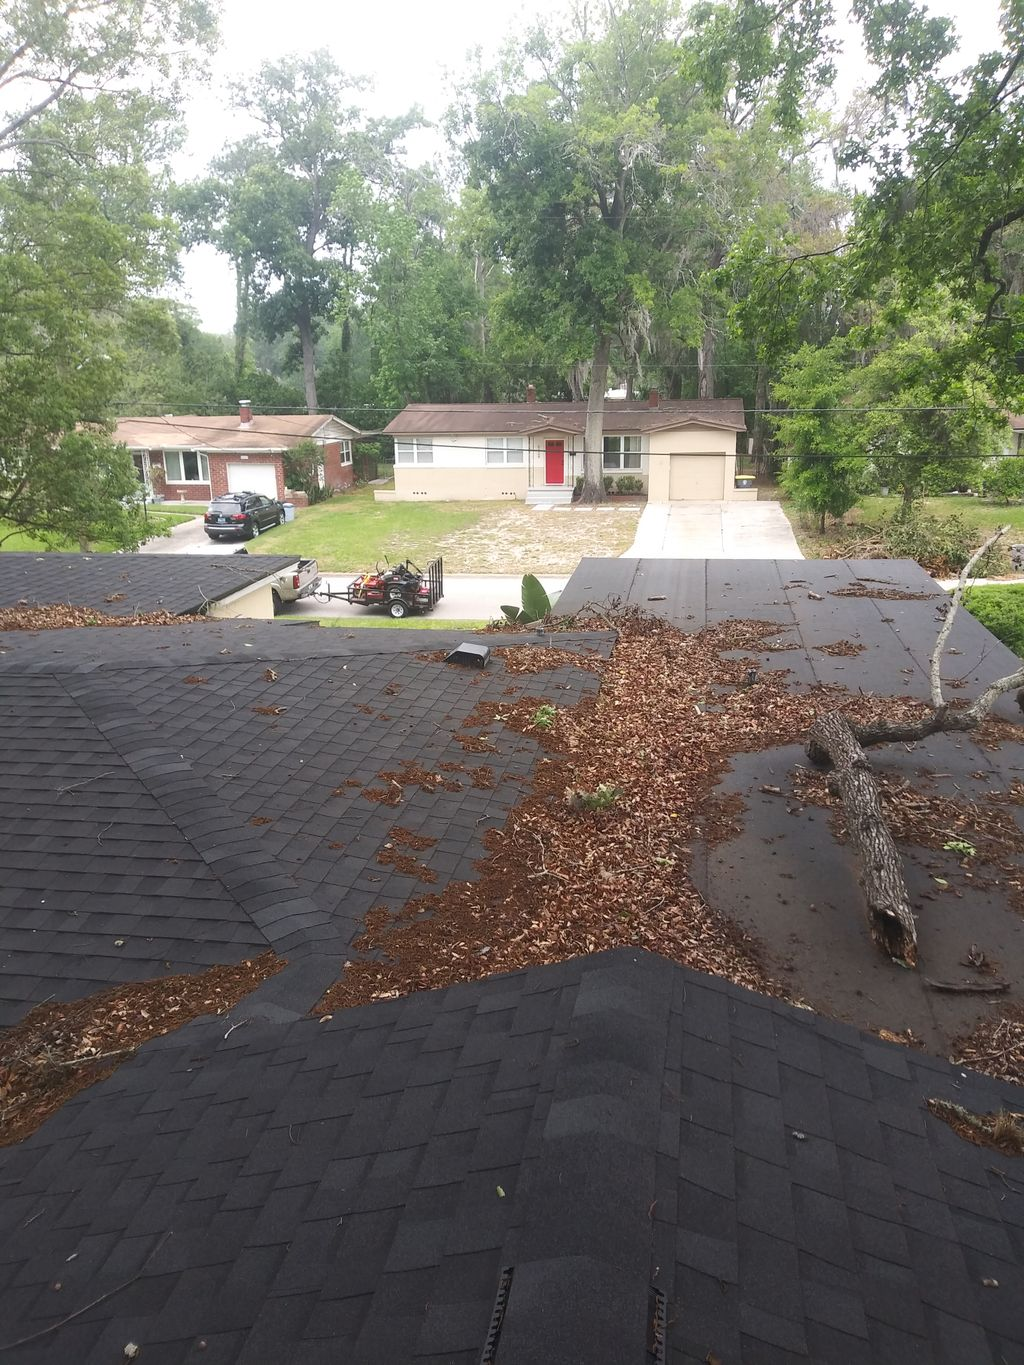 Roof cleaning and trim tree branch